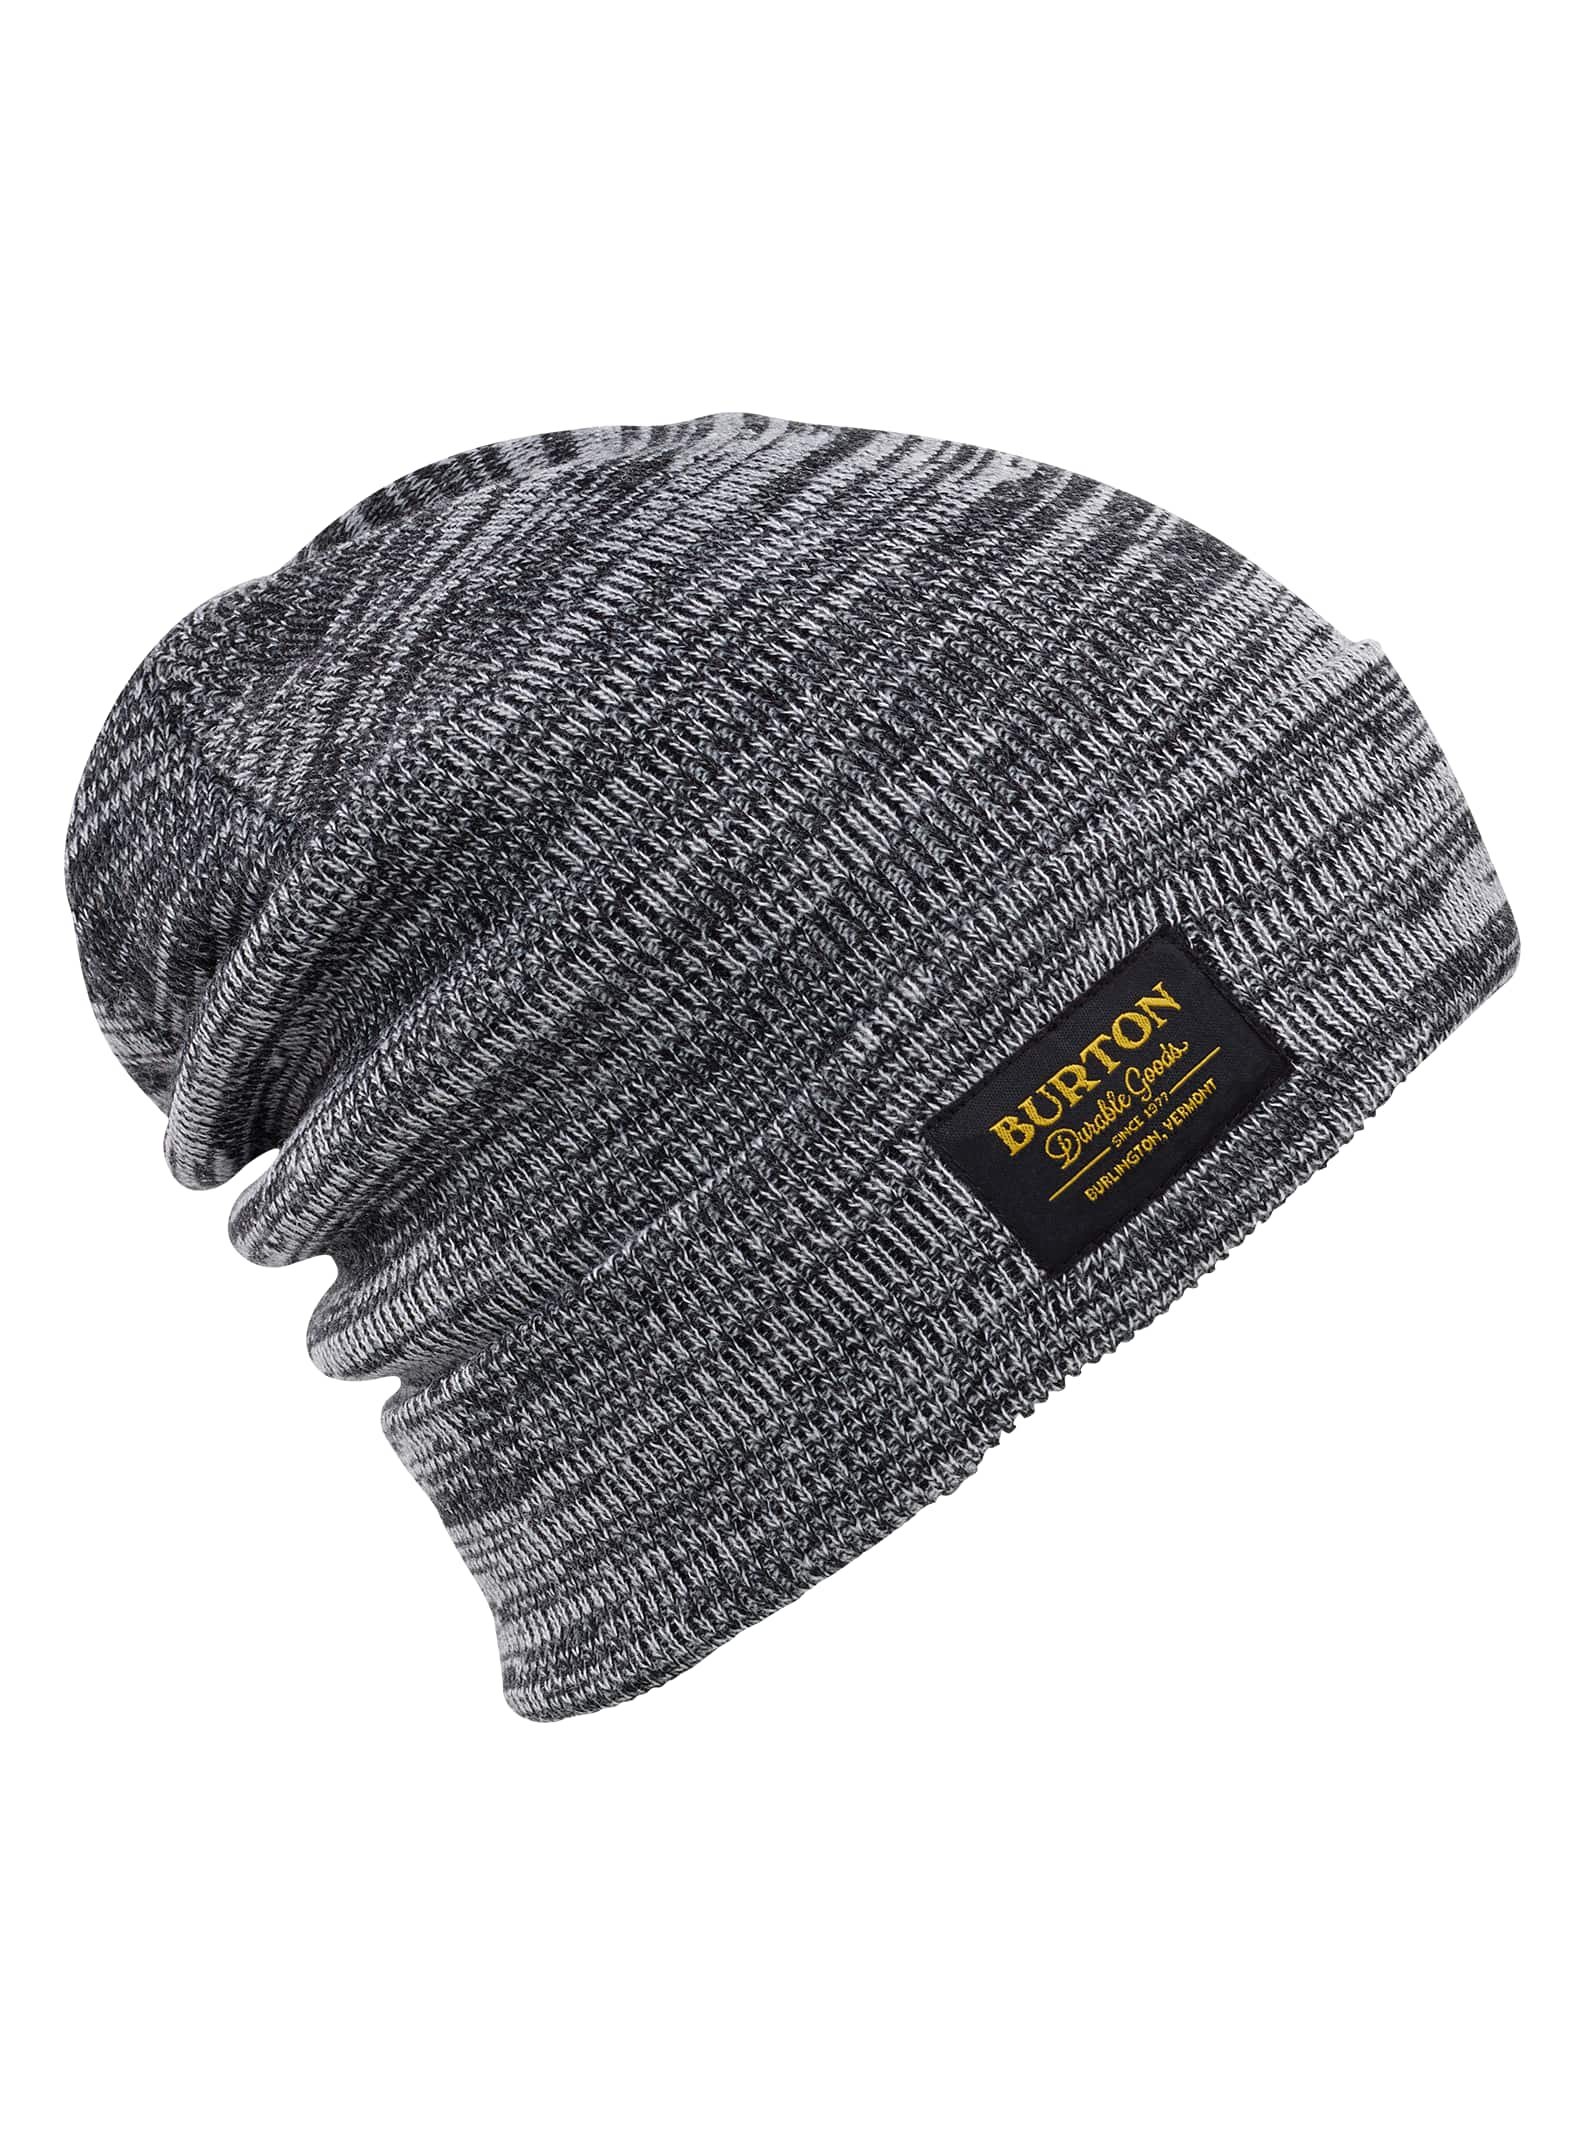 89d489eb650 Women s Sale Hats   Beanies